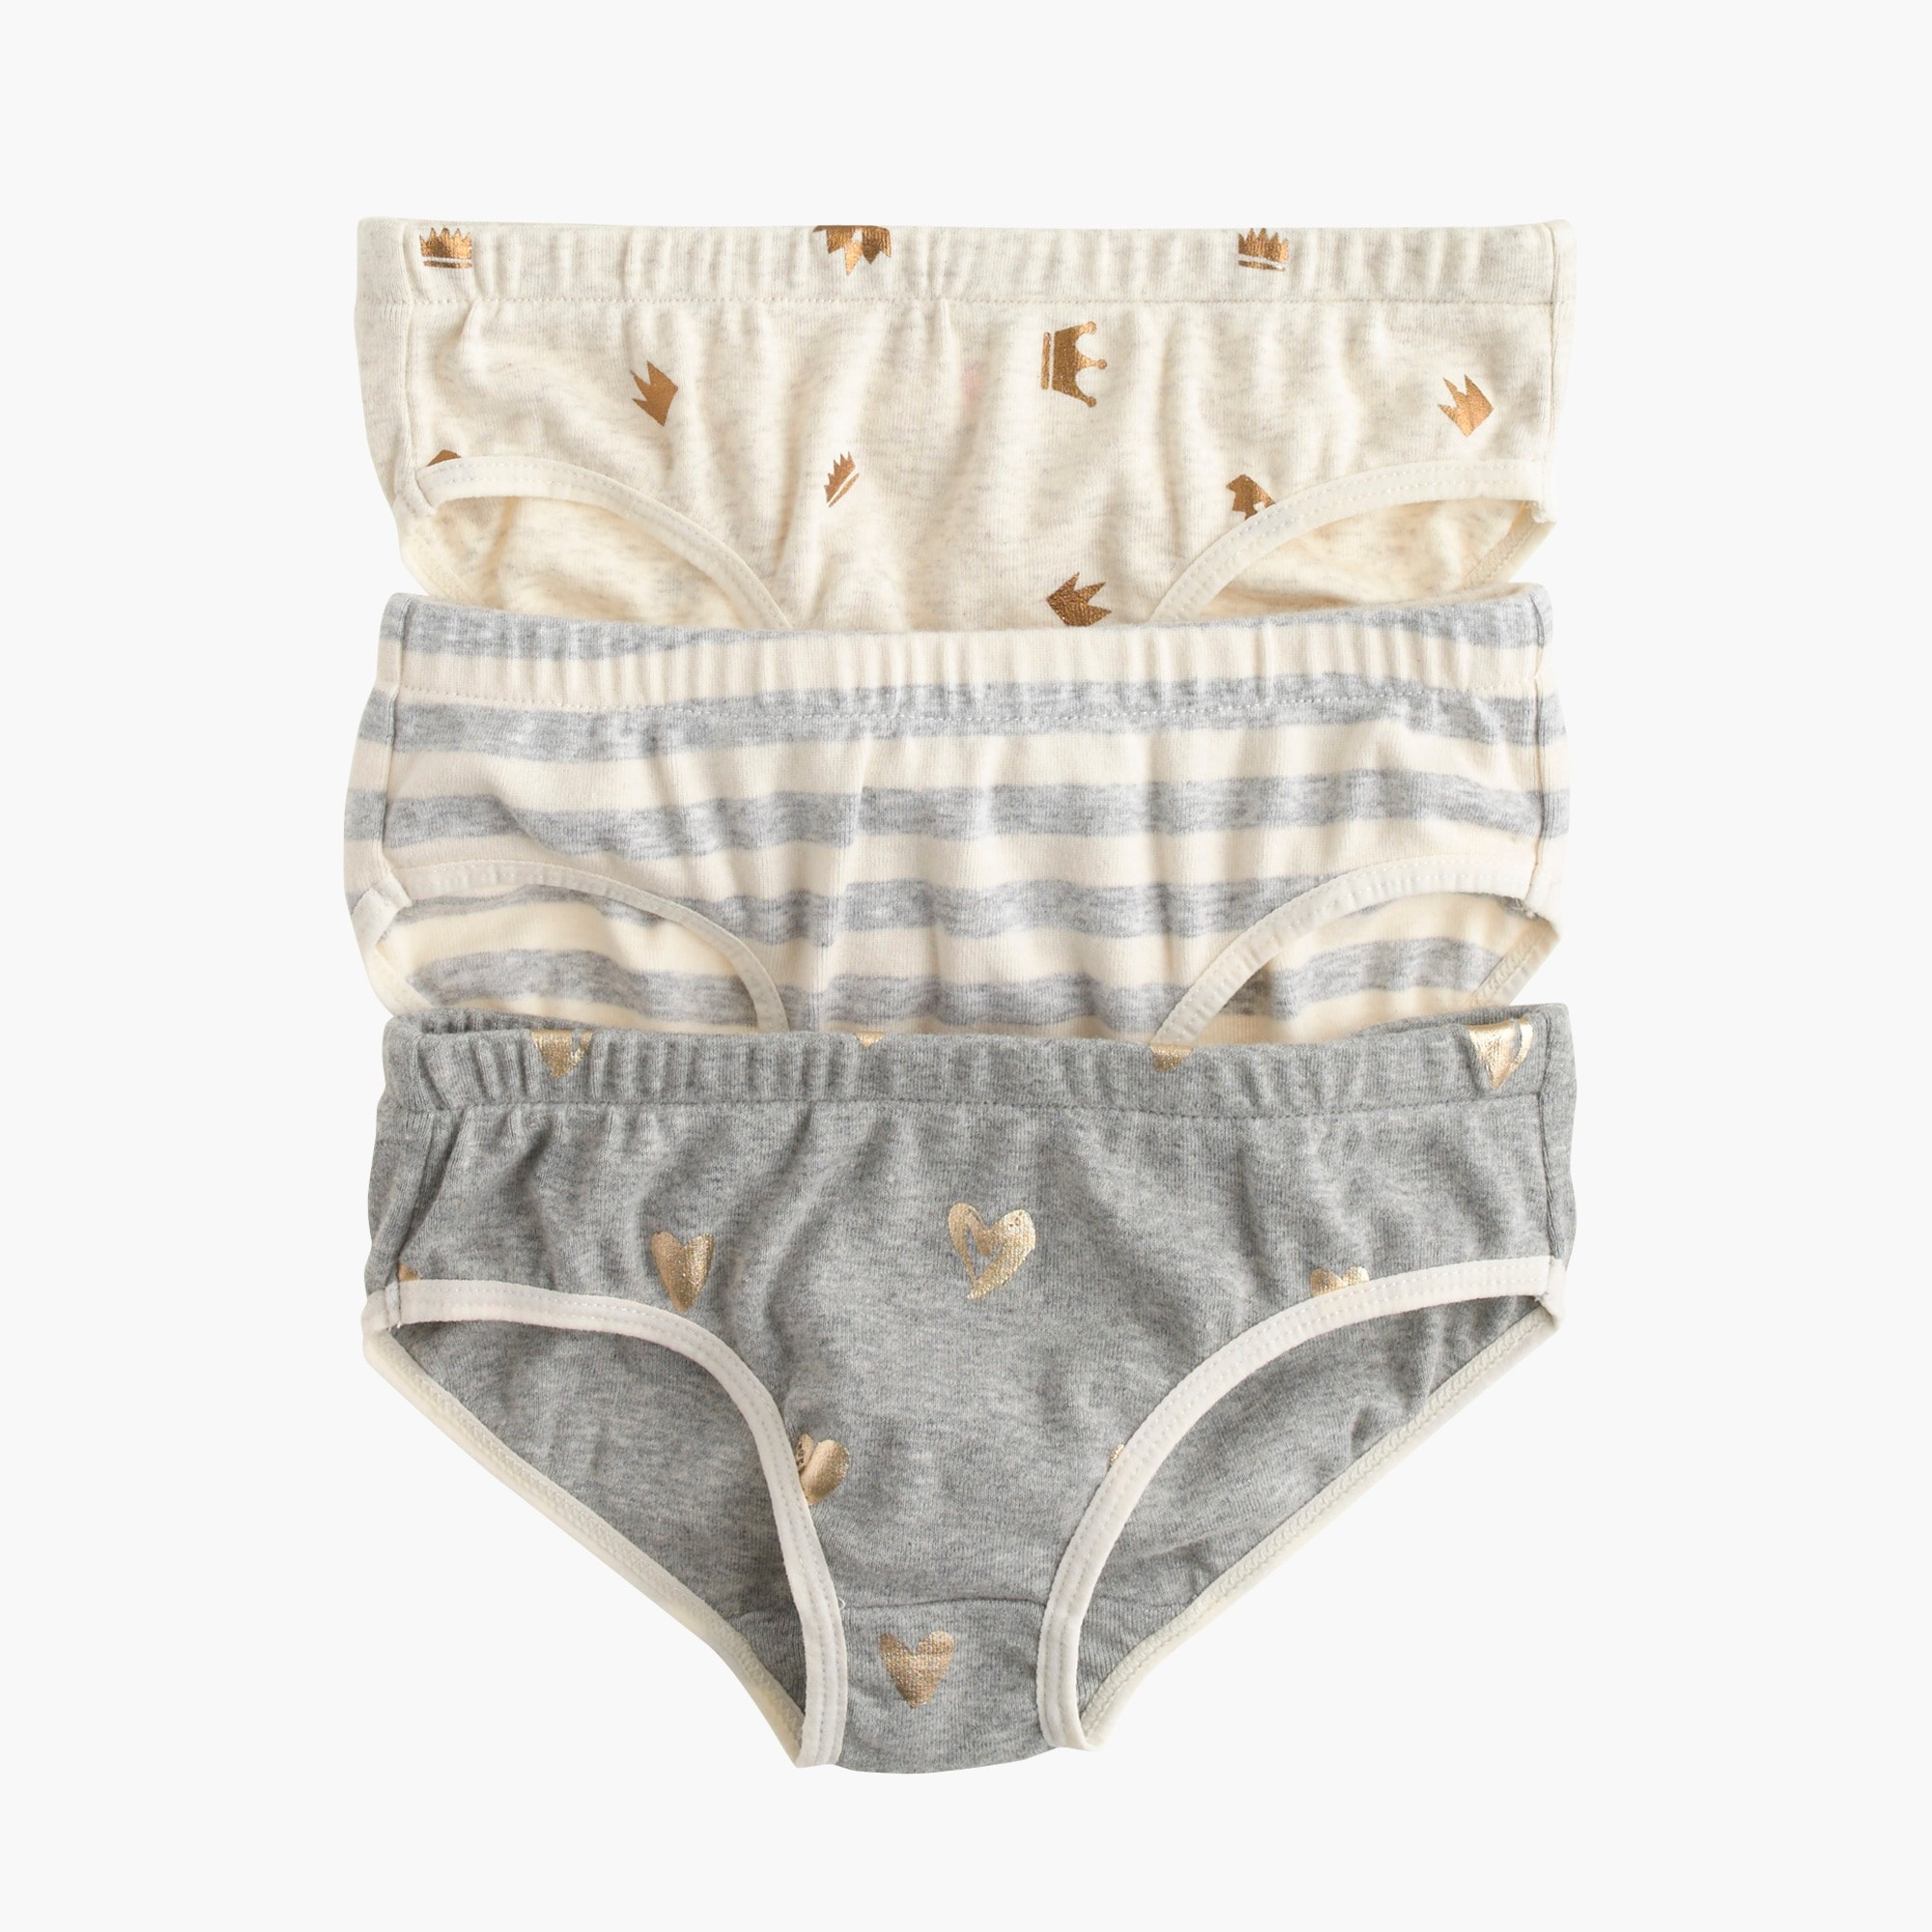 Image 1 for Girls' underwear three-pack in stripe heart